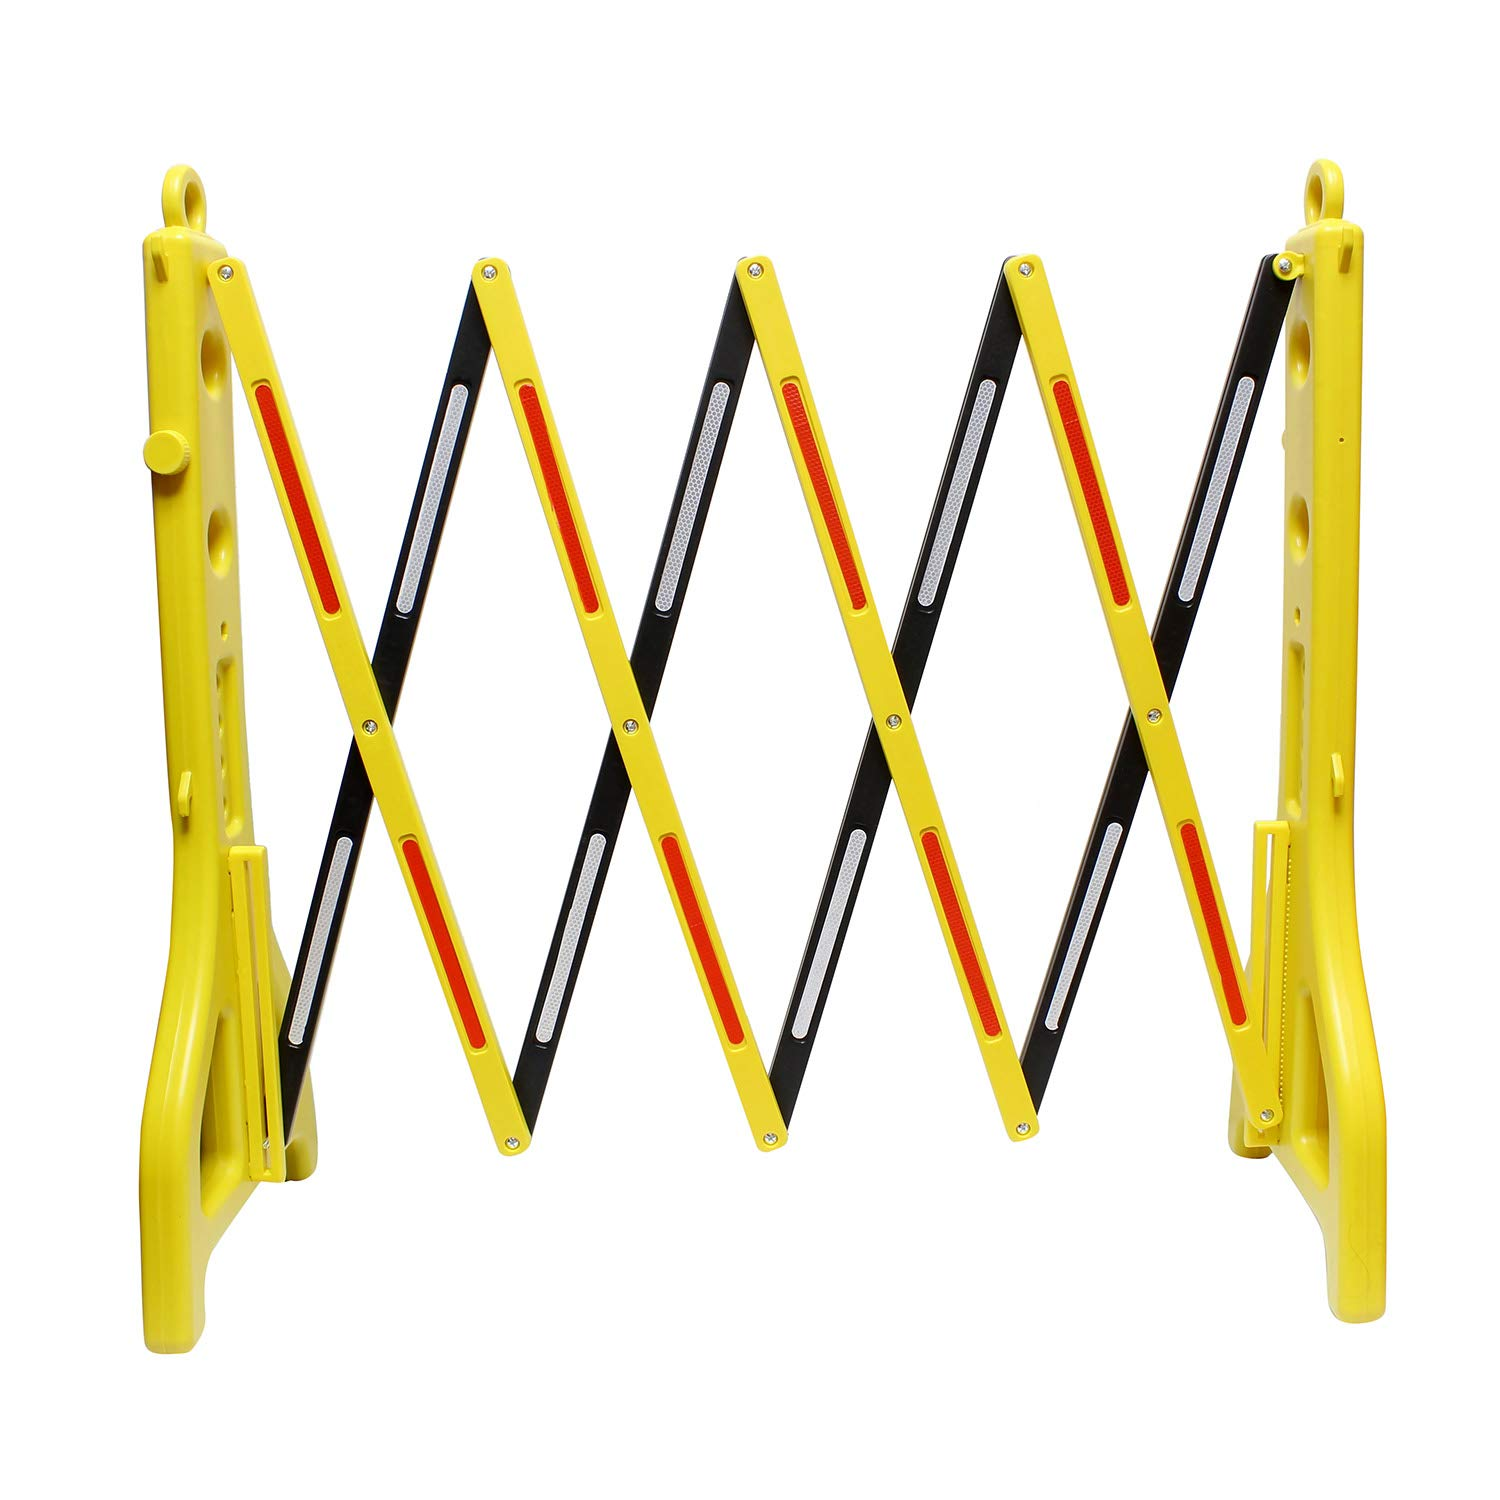 BISupply Folding Barricade - 8 Ft Portable Road Safety Barriers with Reflectors, Construction Barricade Safety Fence by BISupply